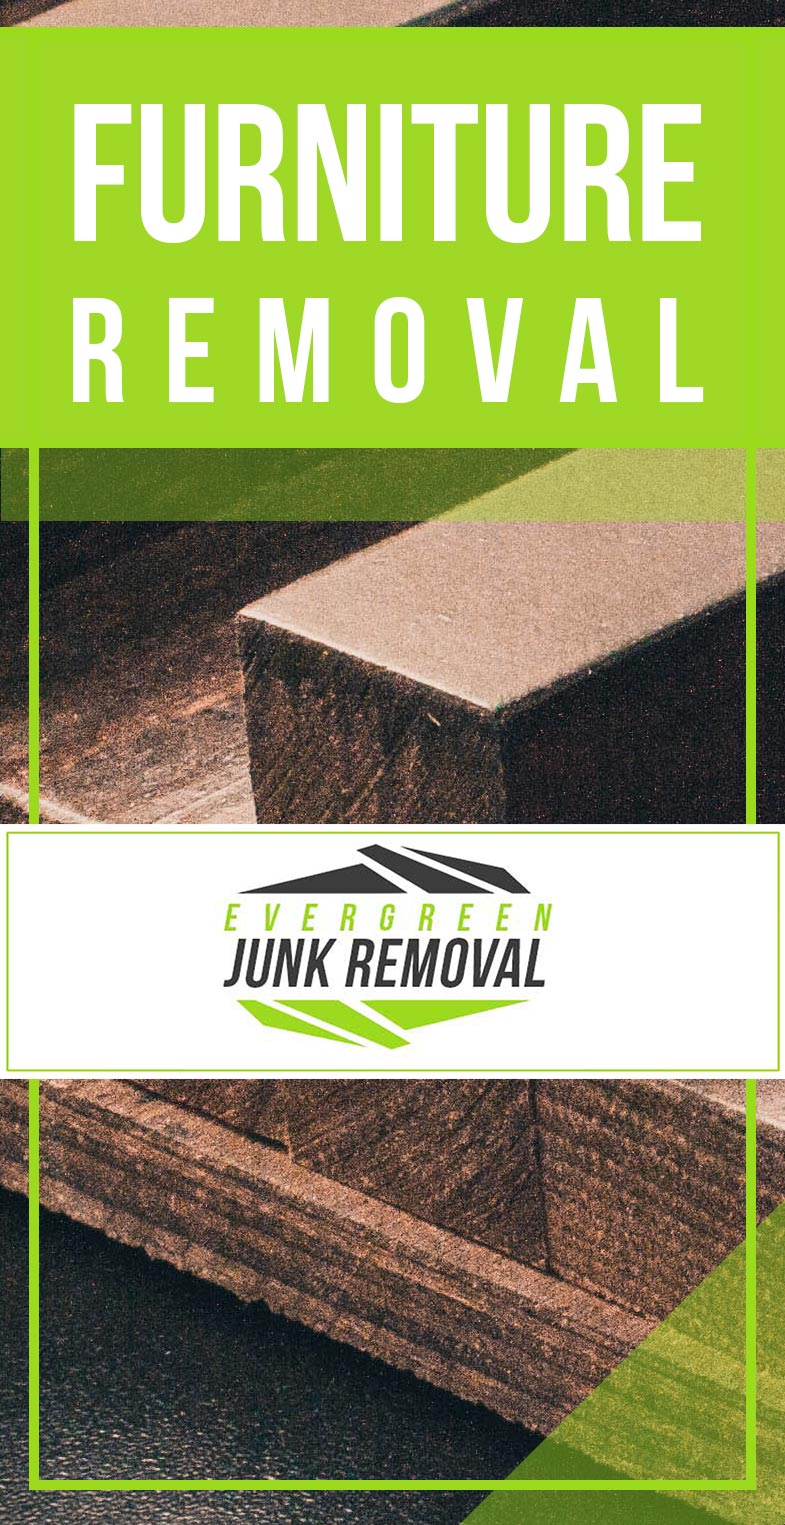 Junk Removal West Park Furniture Removal